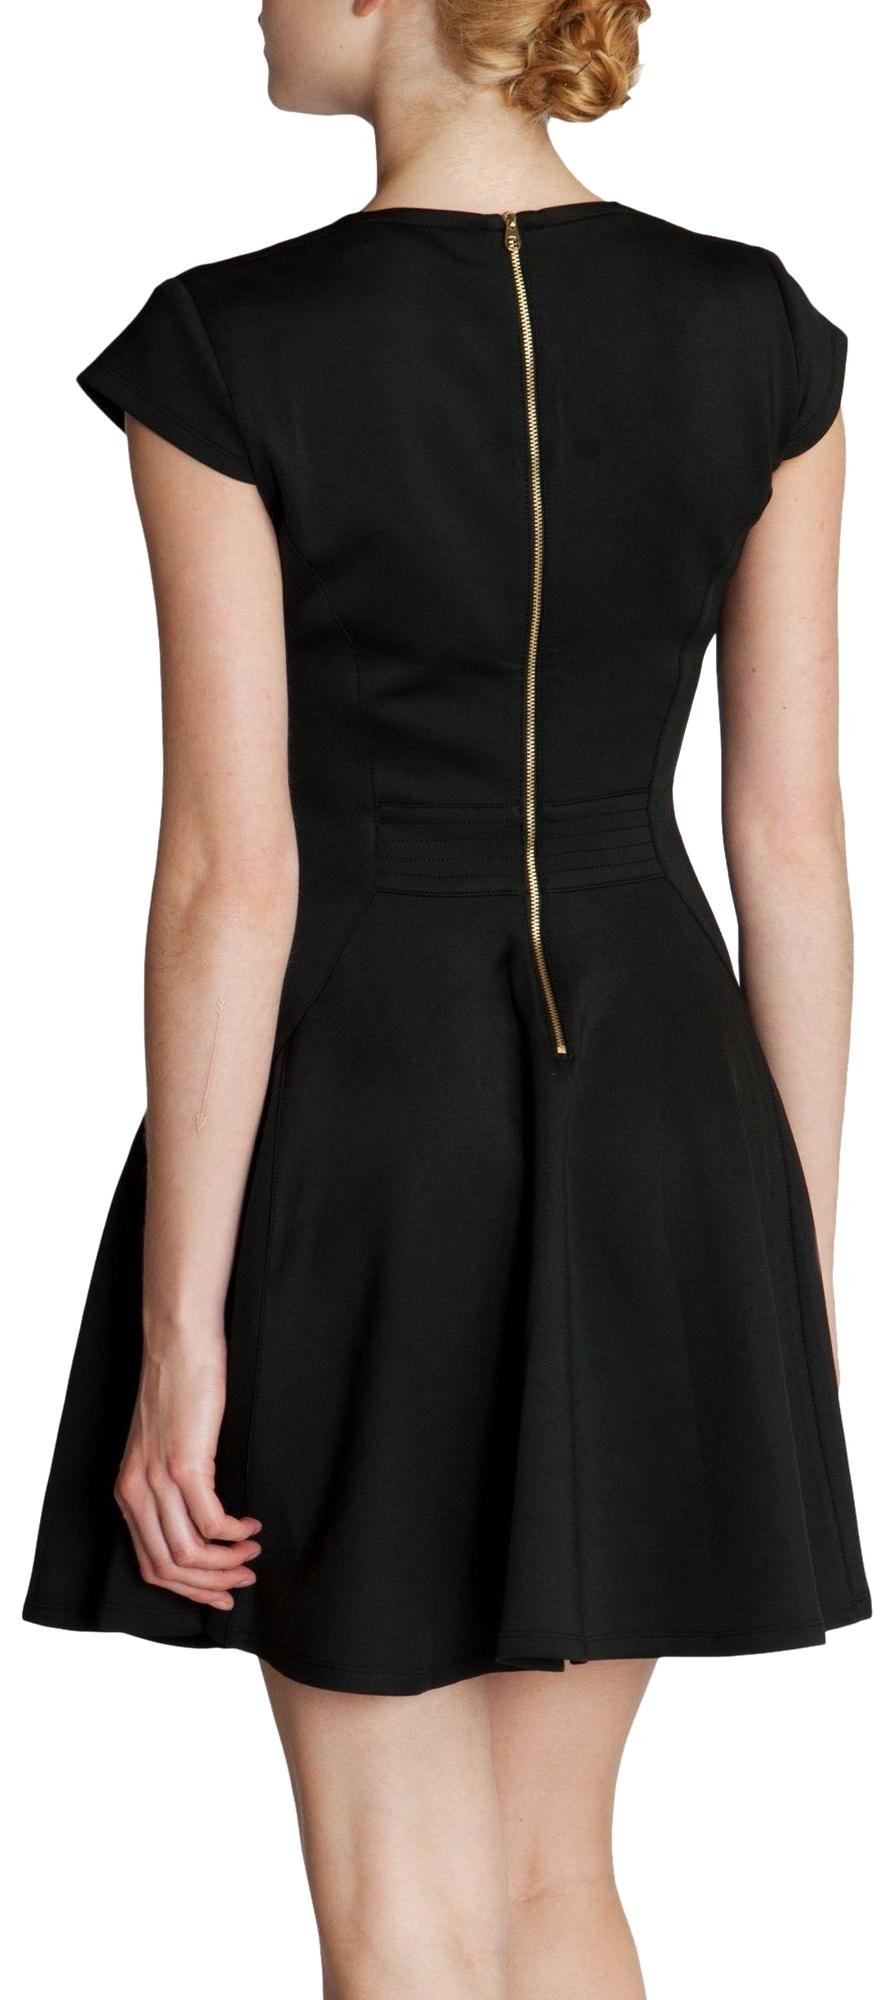 ded6f67ab2 Dresses Ted Baker Size Chart